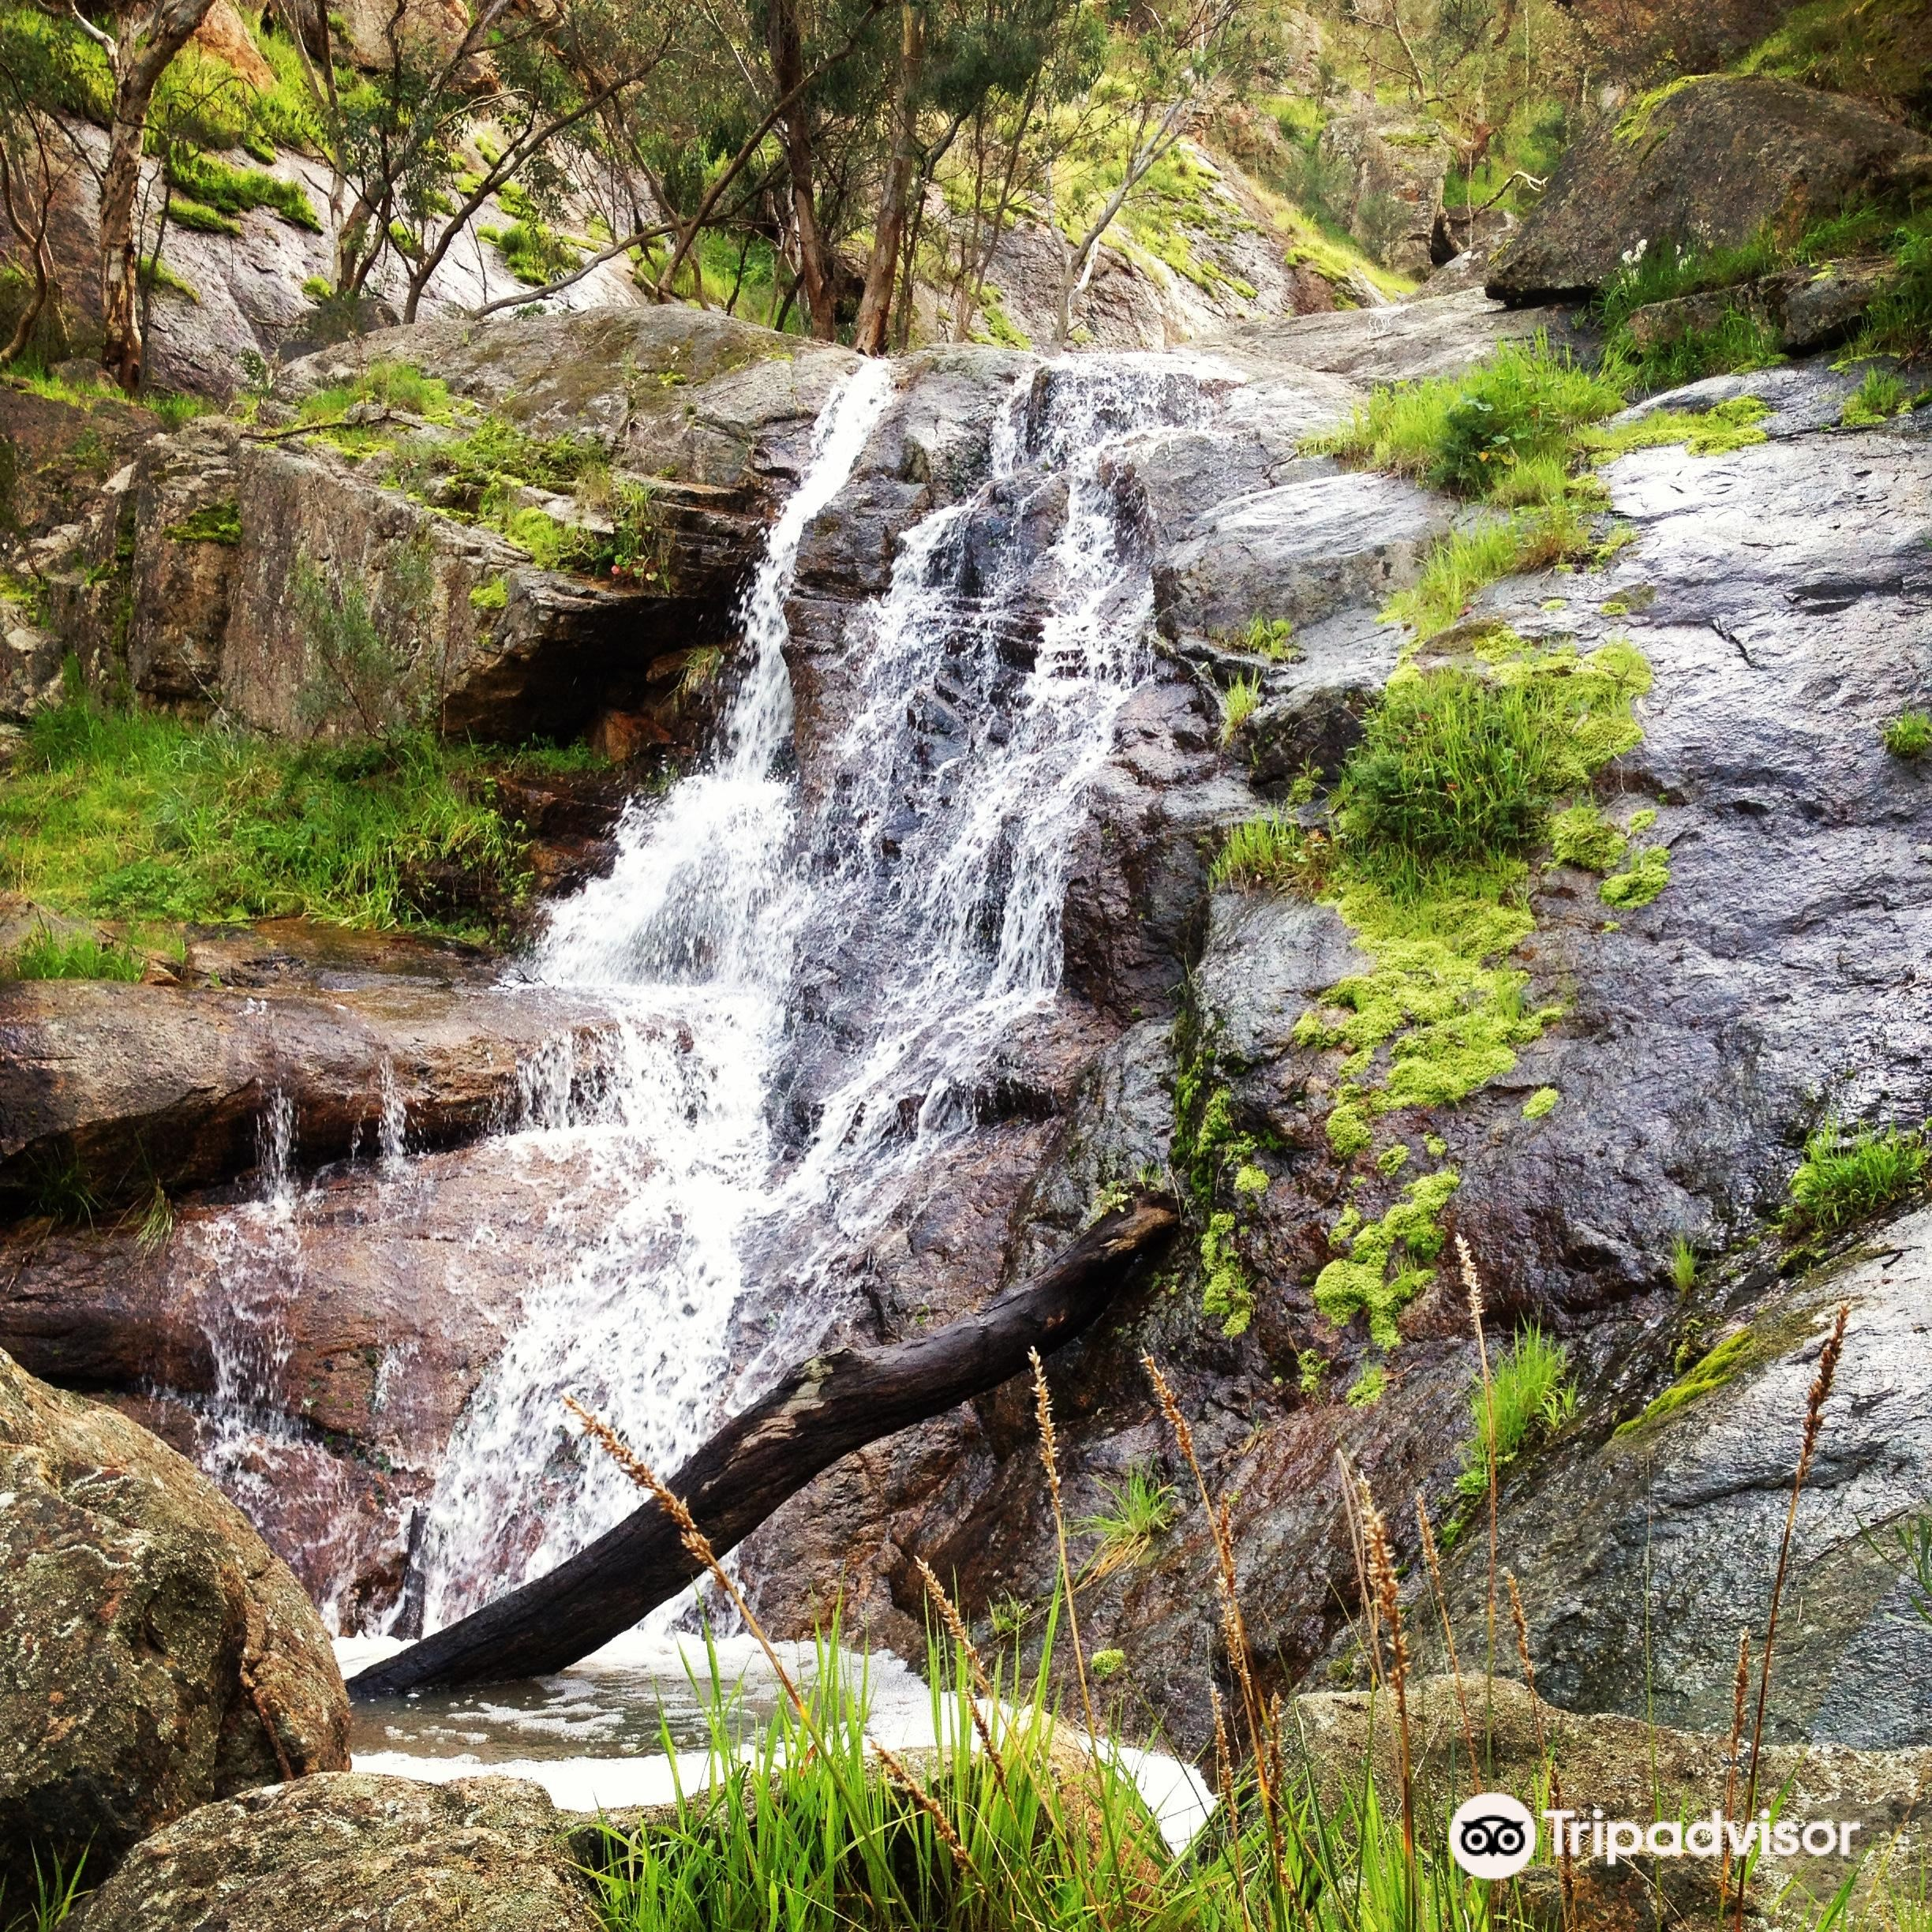 Warby-Ovens National Park